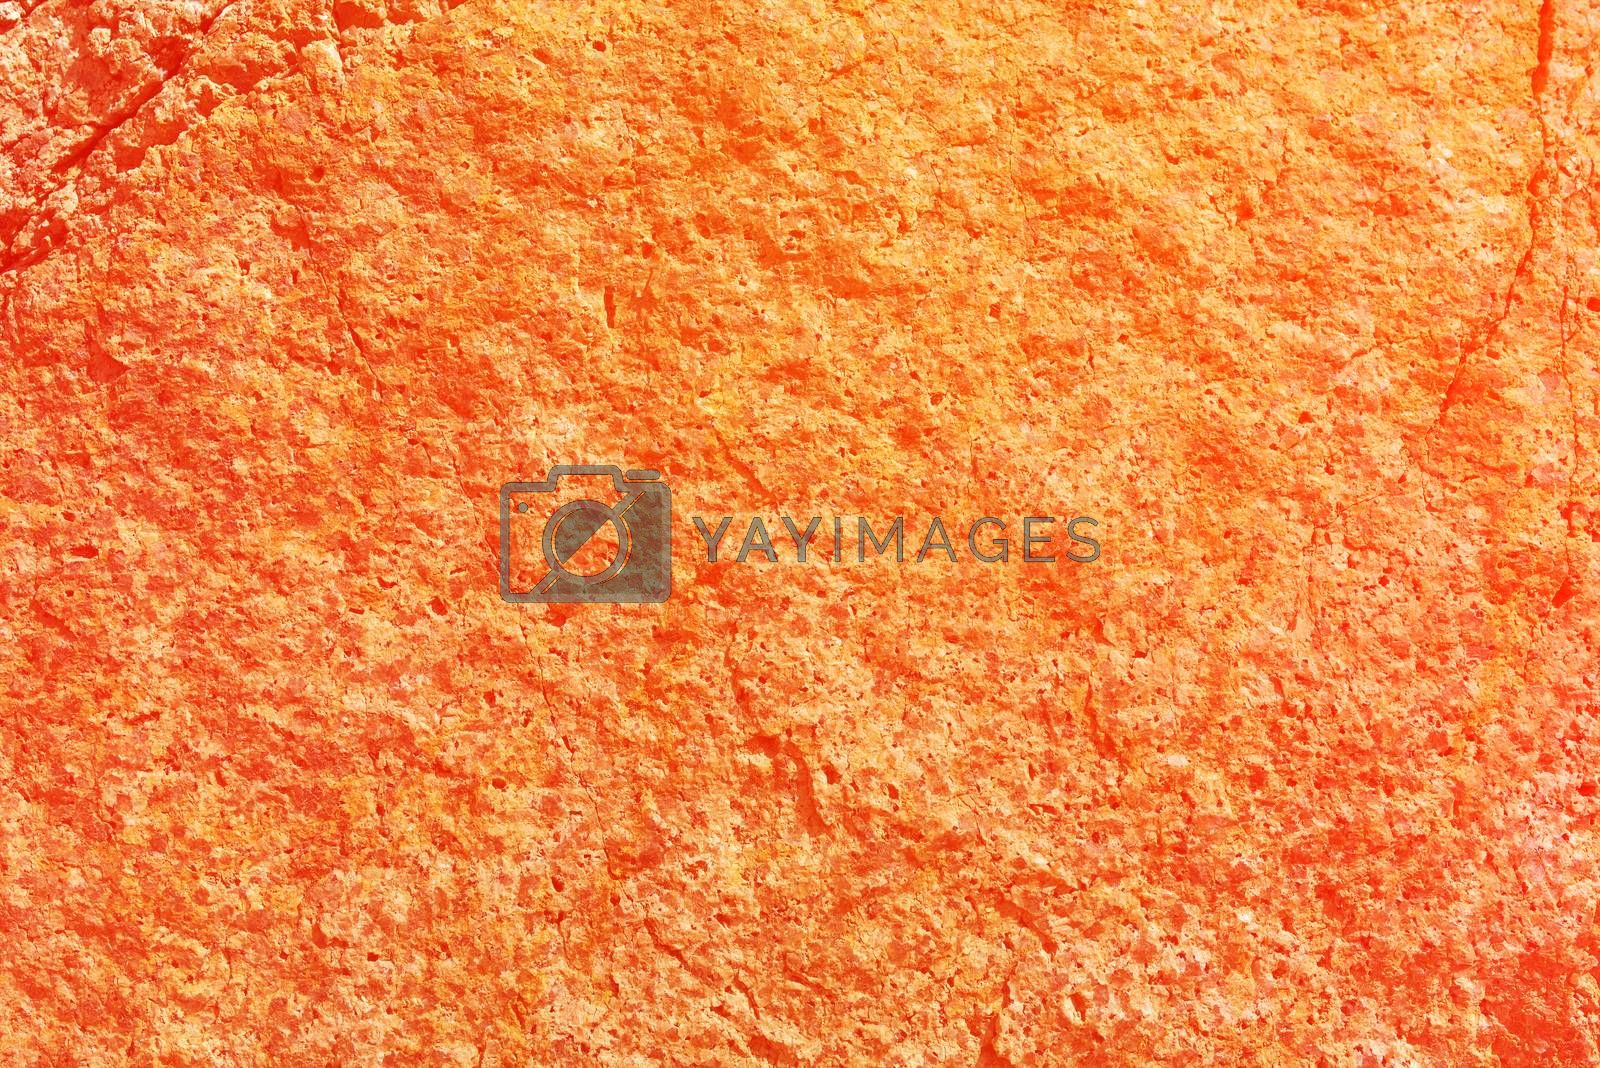 Abstract multicolored background. Gradient defocused abstract background. Wall texture